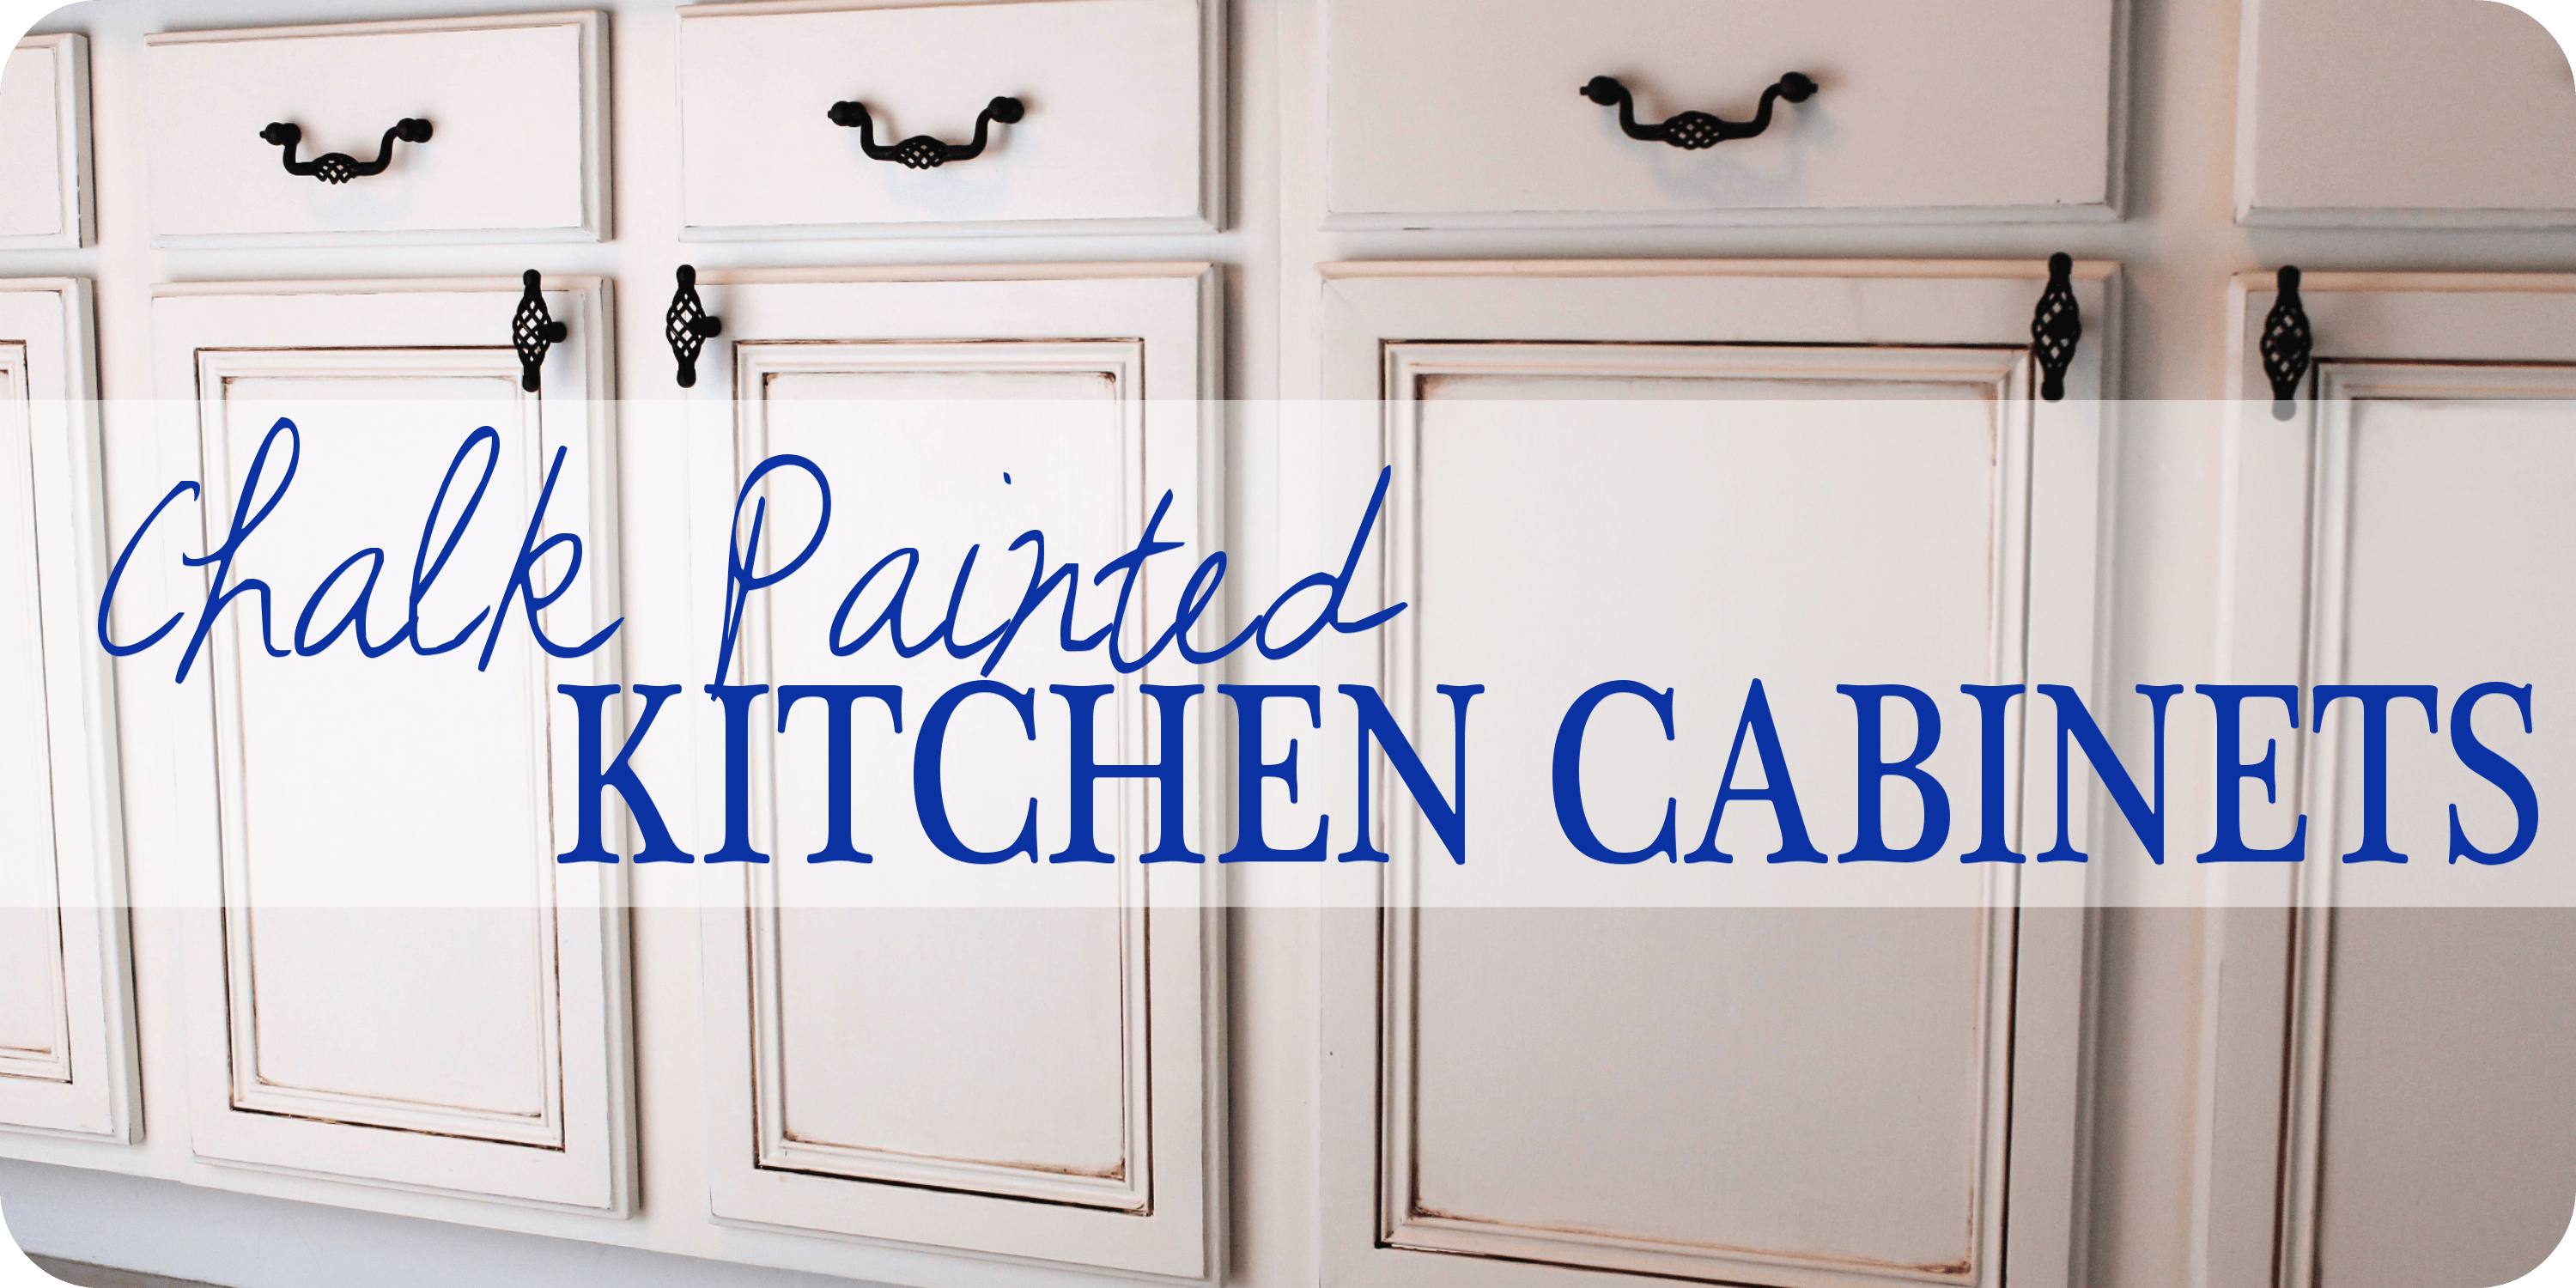 Painted Kitchen Cabinets Chalk Paint! Well Groomed Home